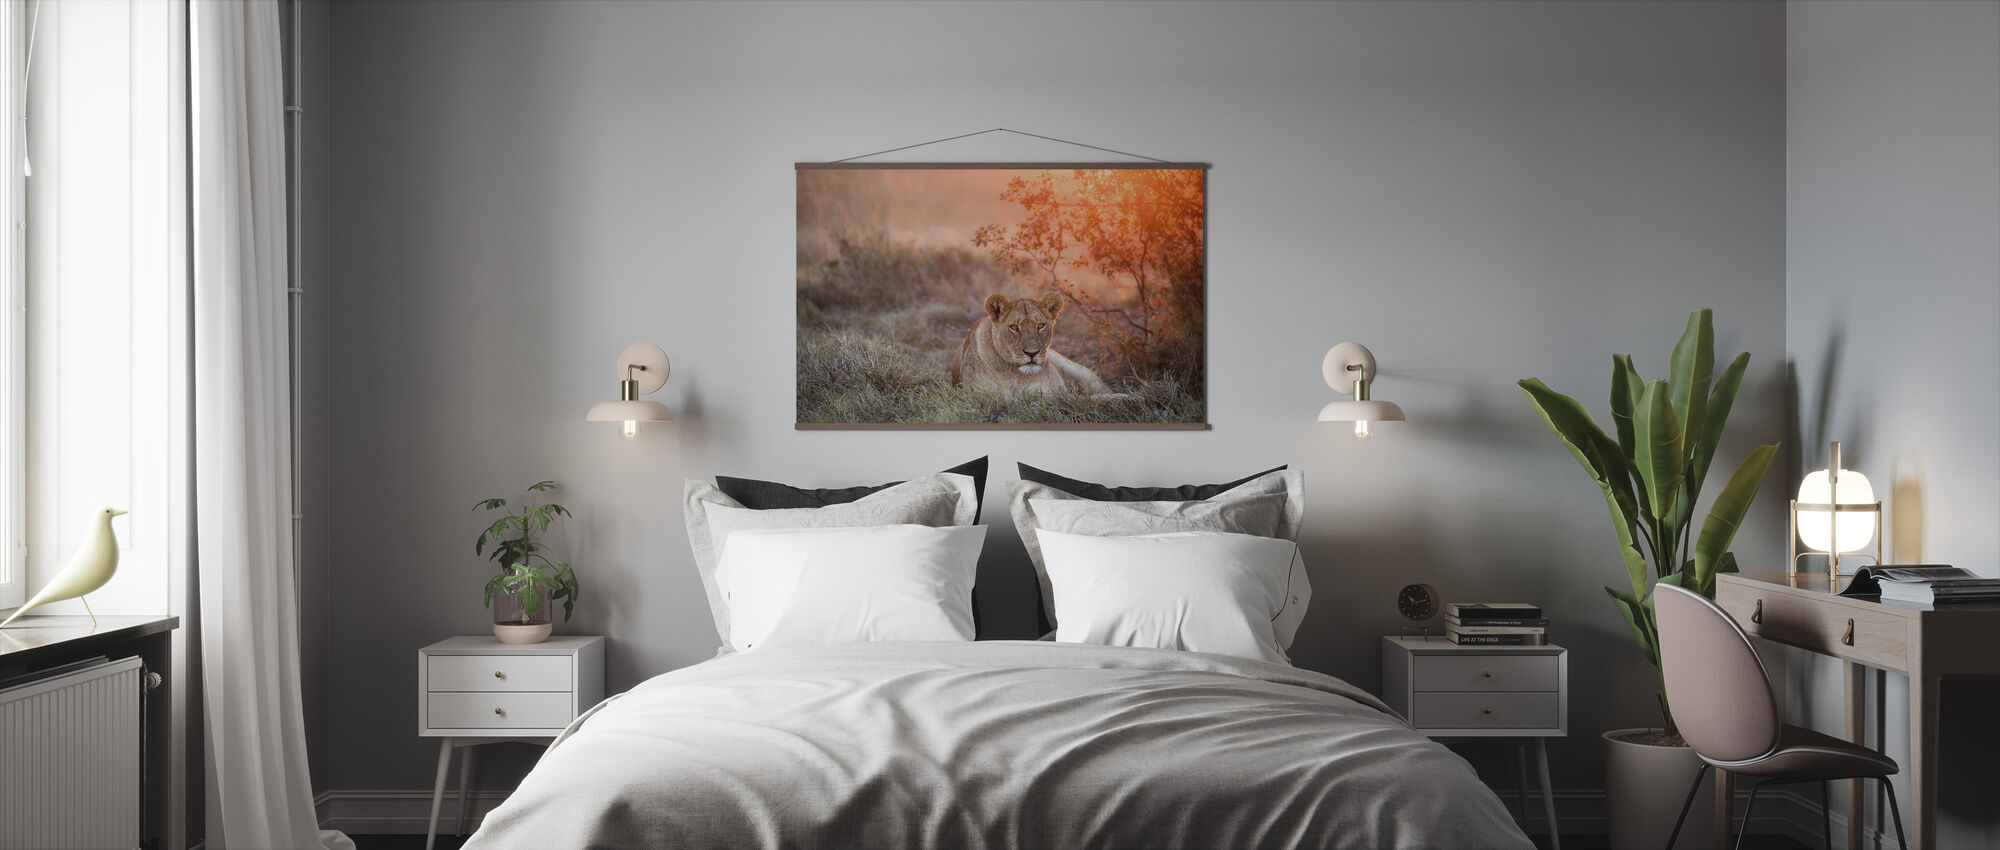 Sunset Lioness - Poster - Bedroom